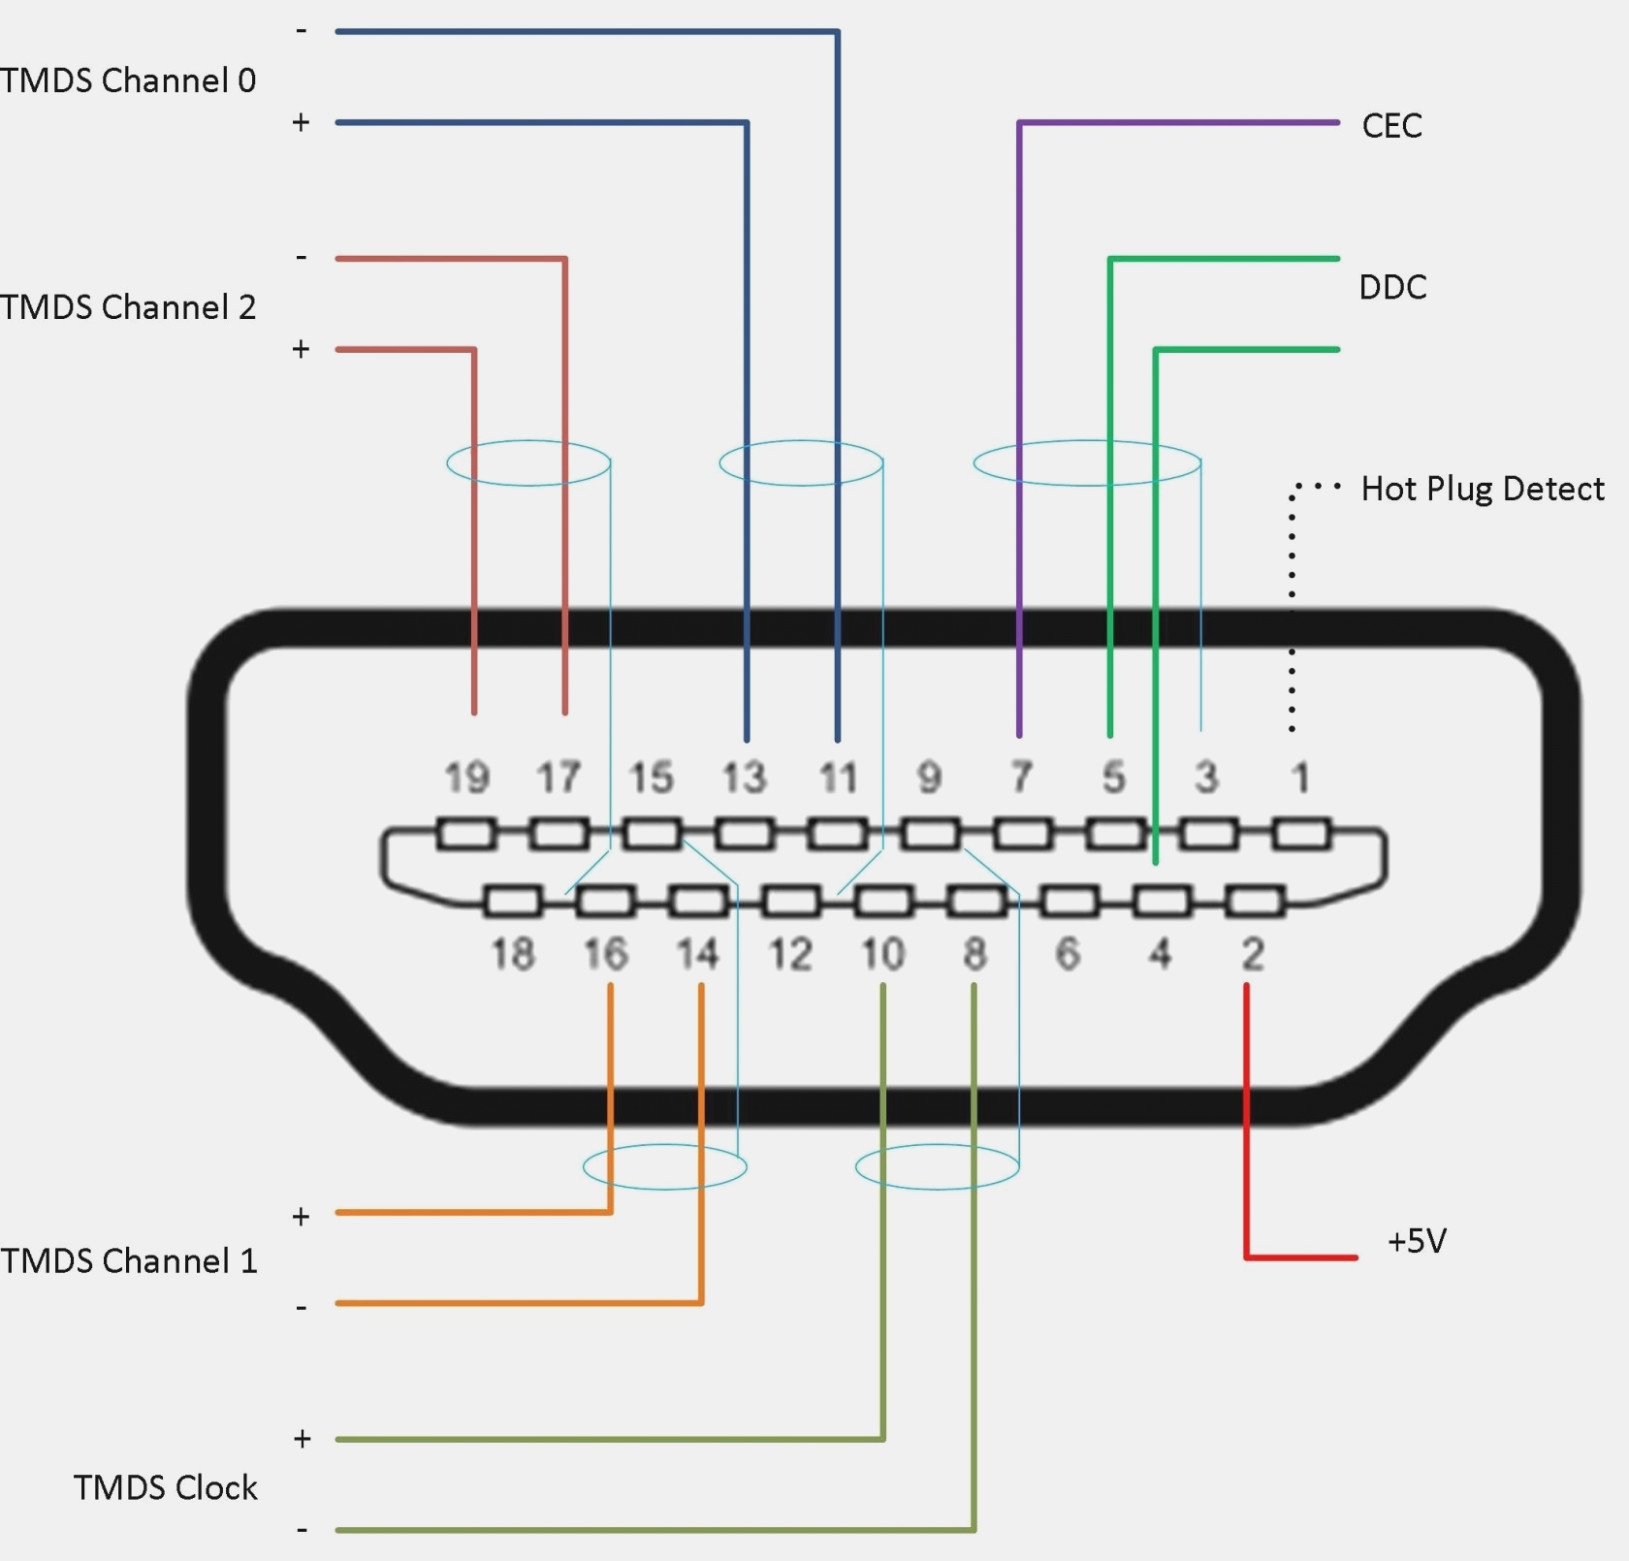 Hdmi To Rca Cable Wiring Diagram | Manual E-Books - Hdmi To Rca Wiring Diagram